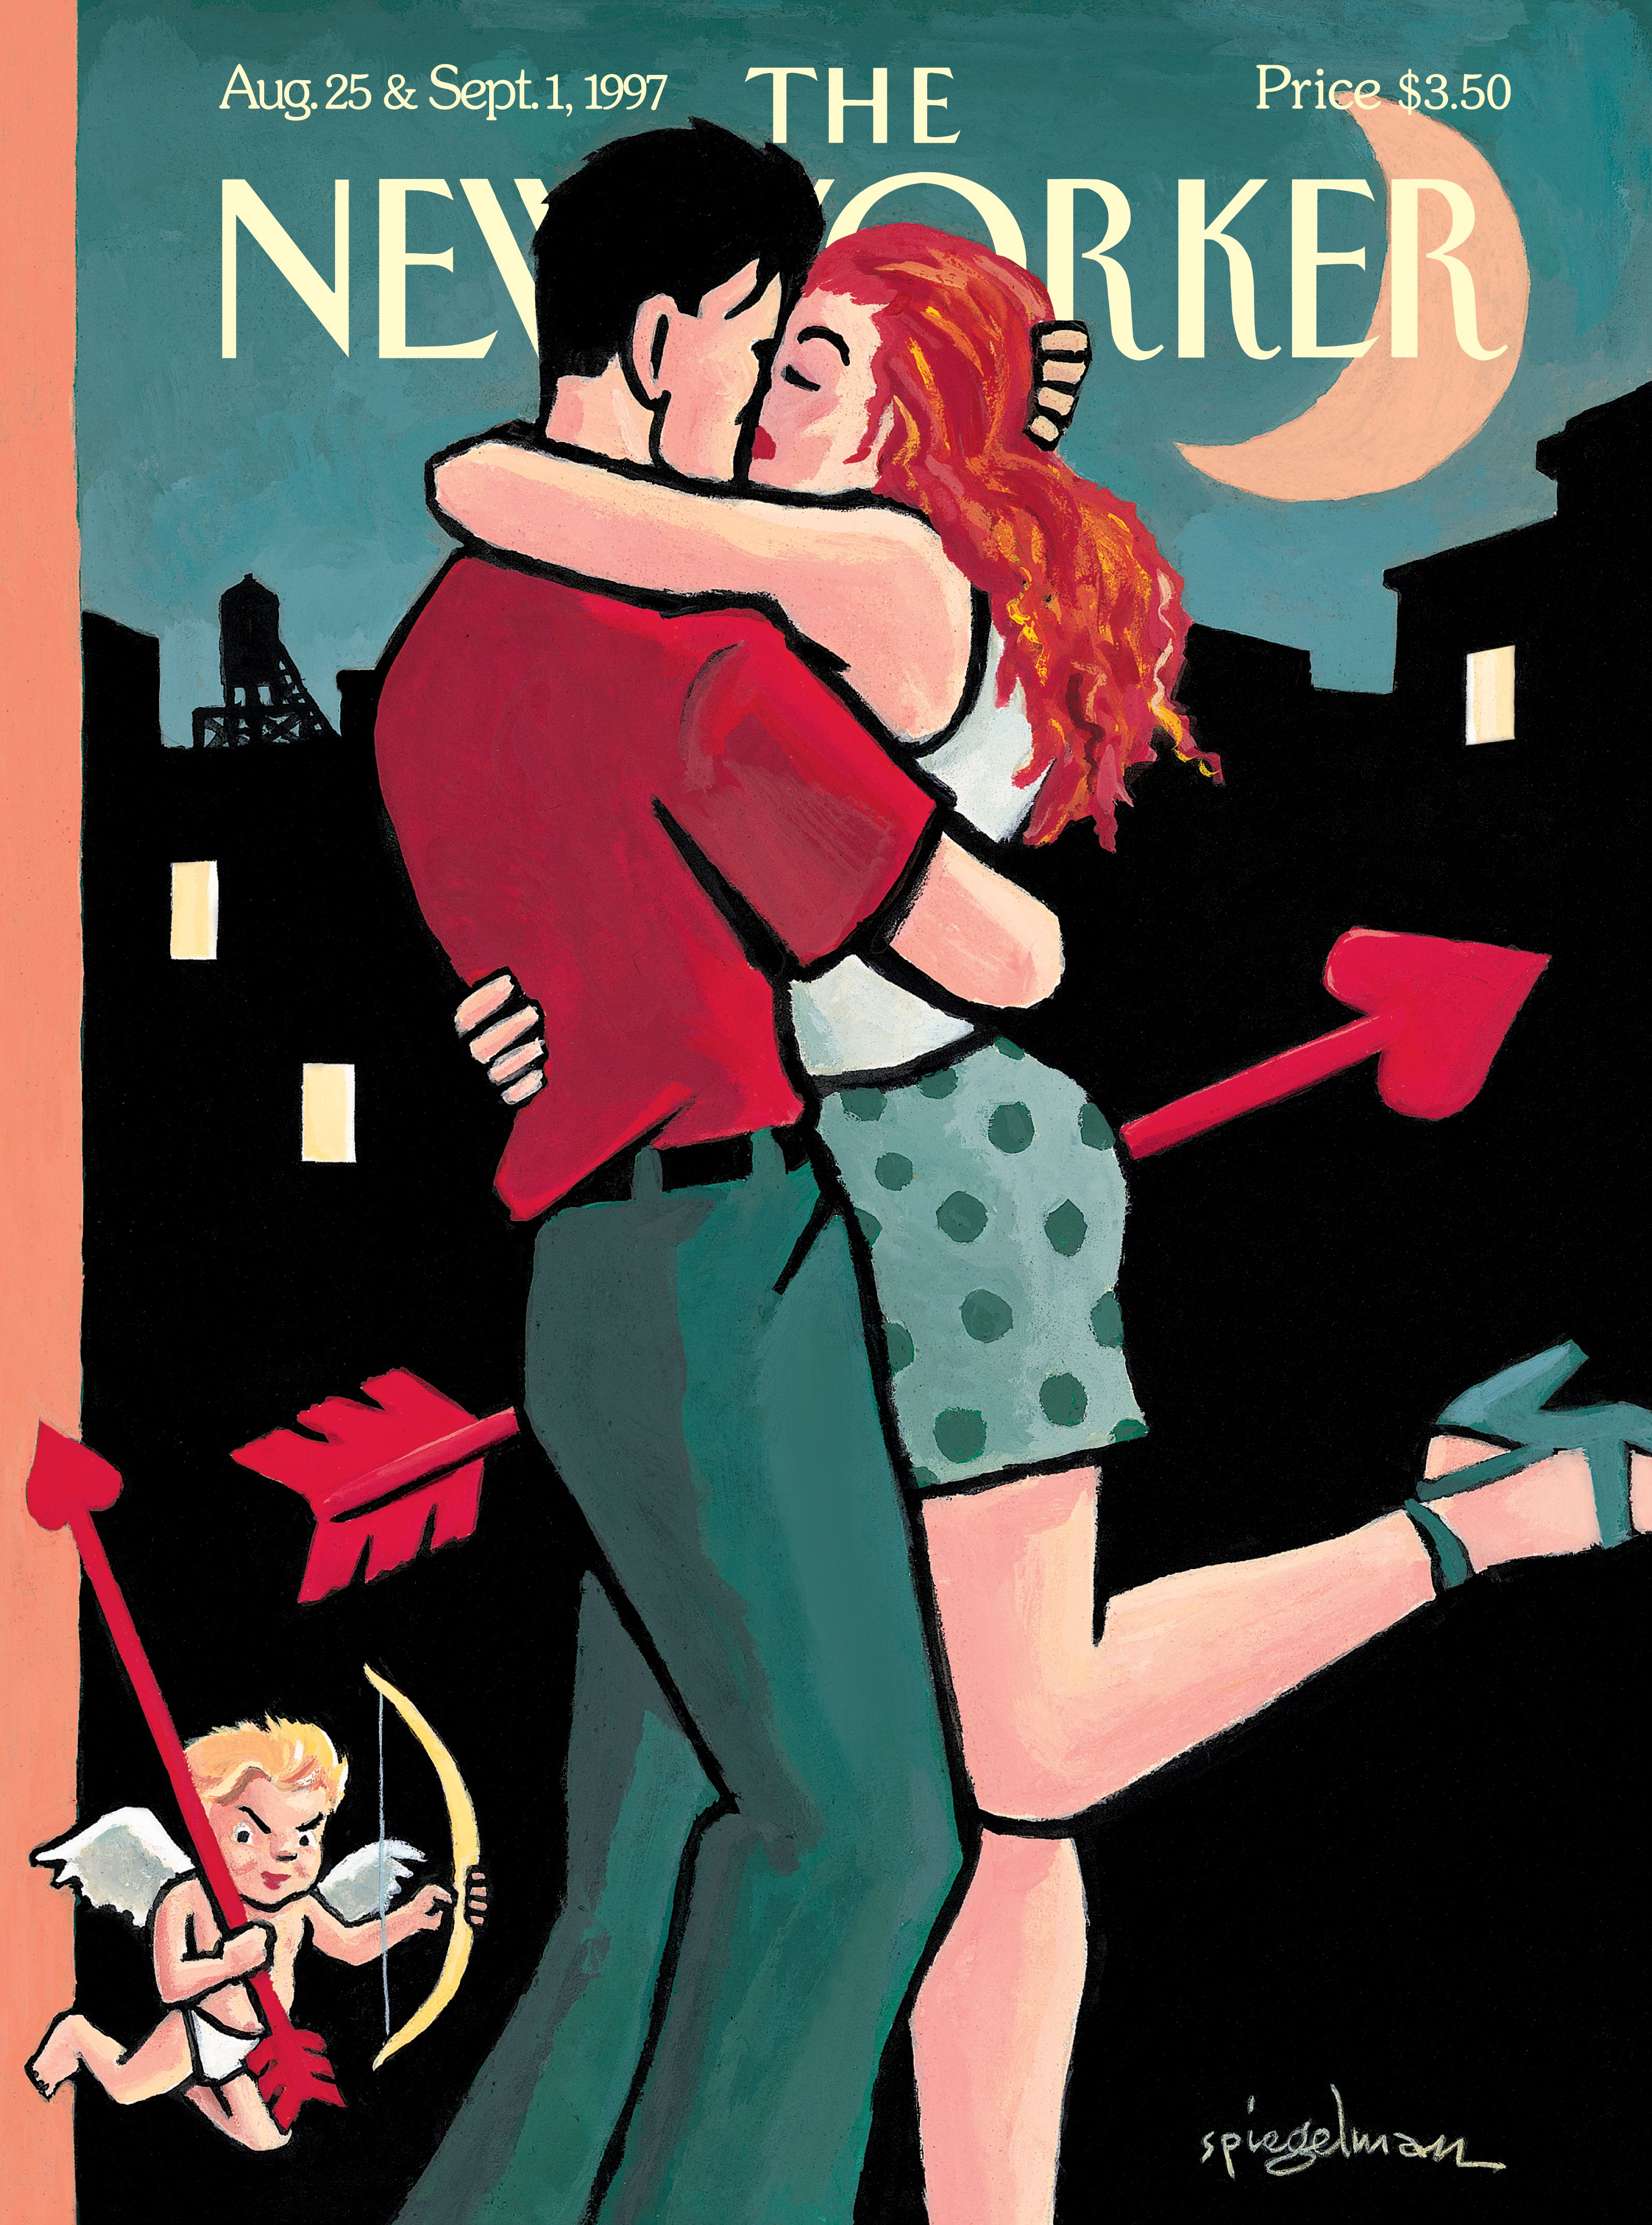 The New Yorker Cover 1997_08_25_Spiegelman_Cupid.